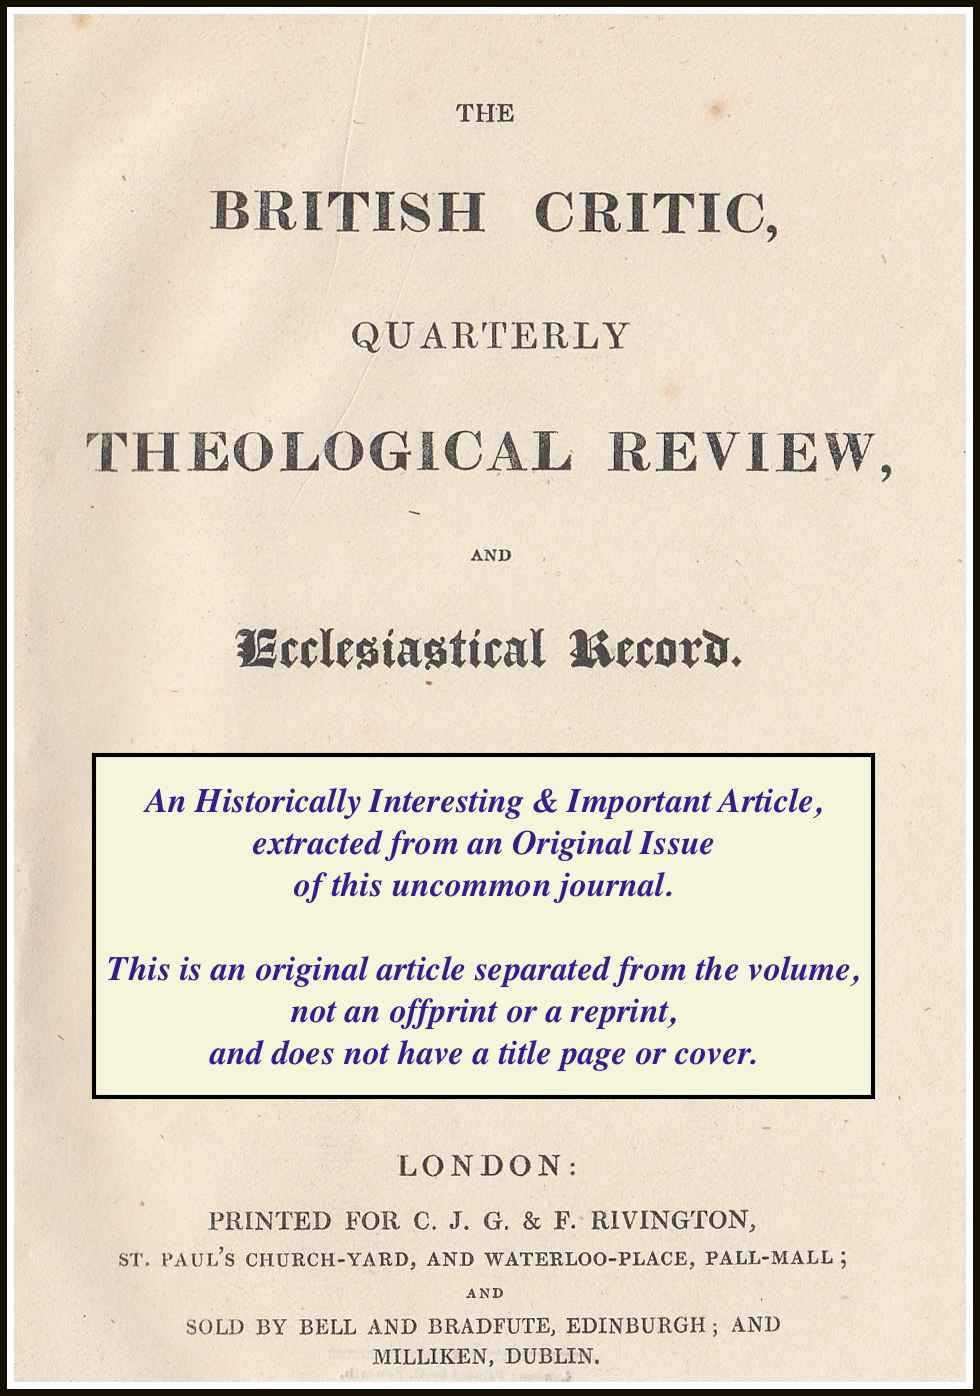 --- - The Life of Bishop Middleton by C. W. Le Bas. A rare original article from the British Critic, 1831.